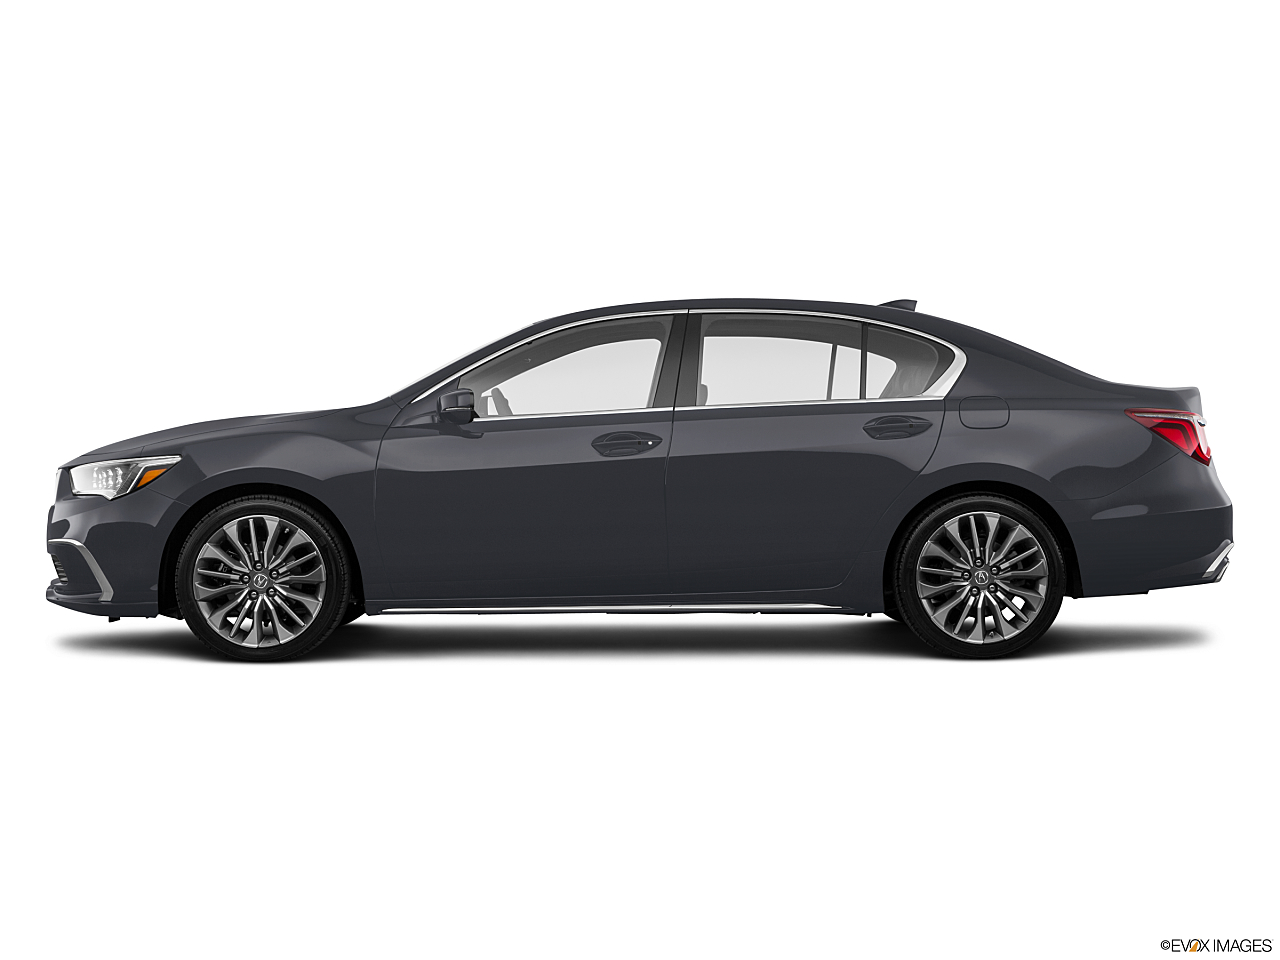 2018 Acura RLX at Acura of Huntington of Huntington Station, NY. The dealership has not provided a description for the image.